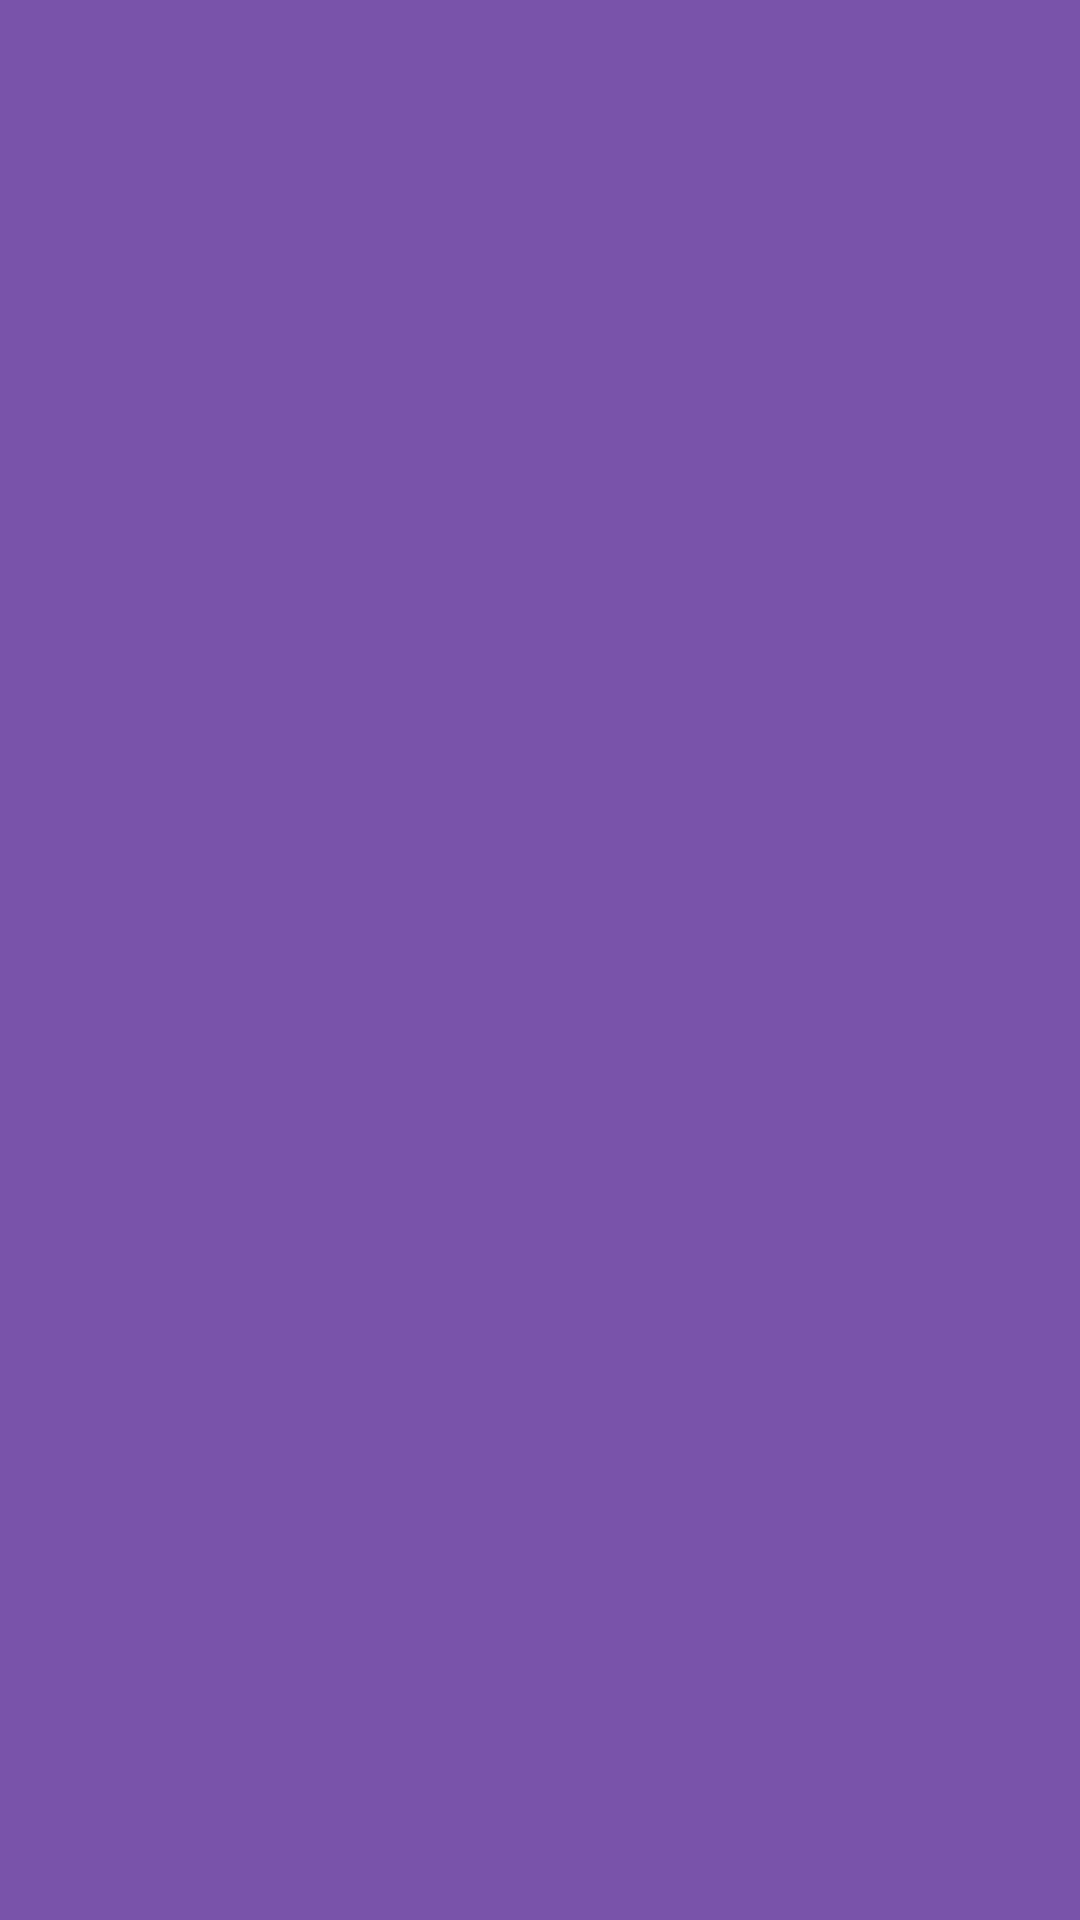 1080x1920 Royal Purple Solid Color Background